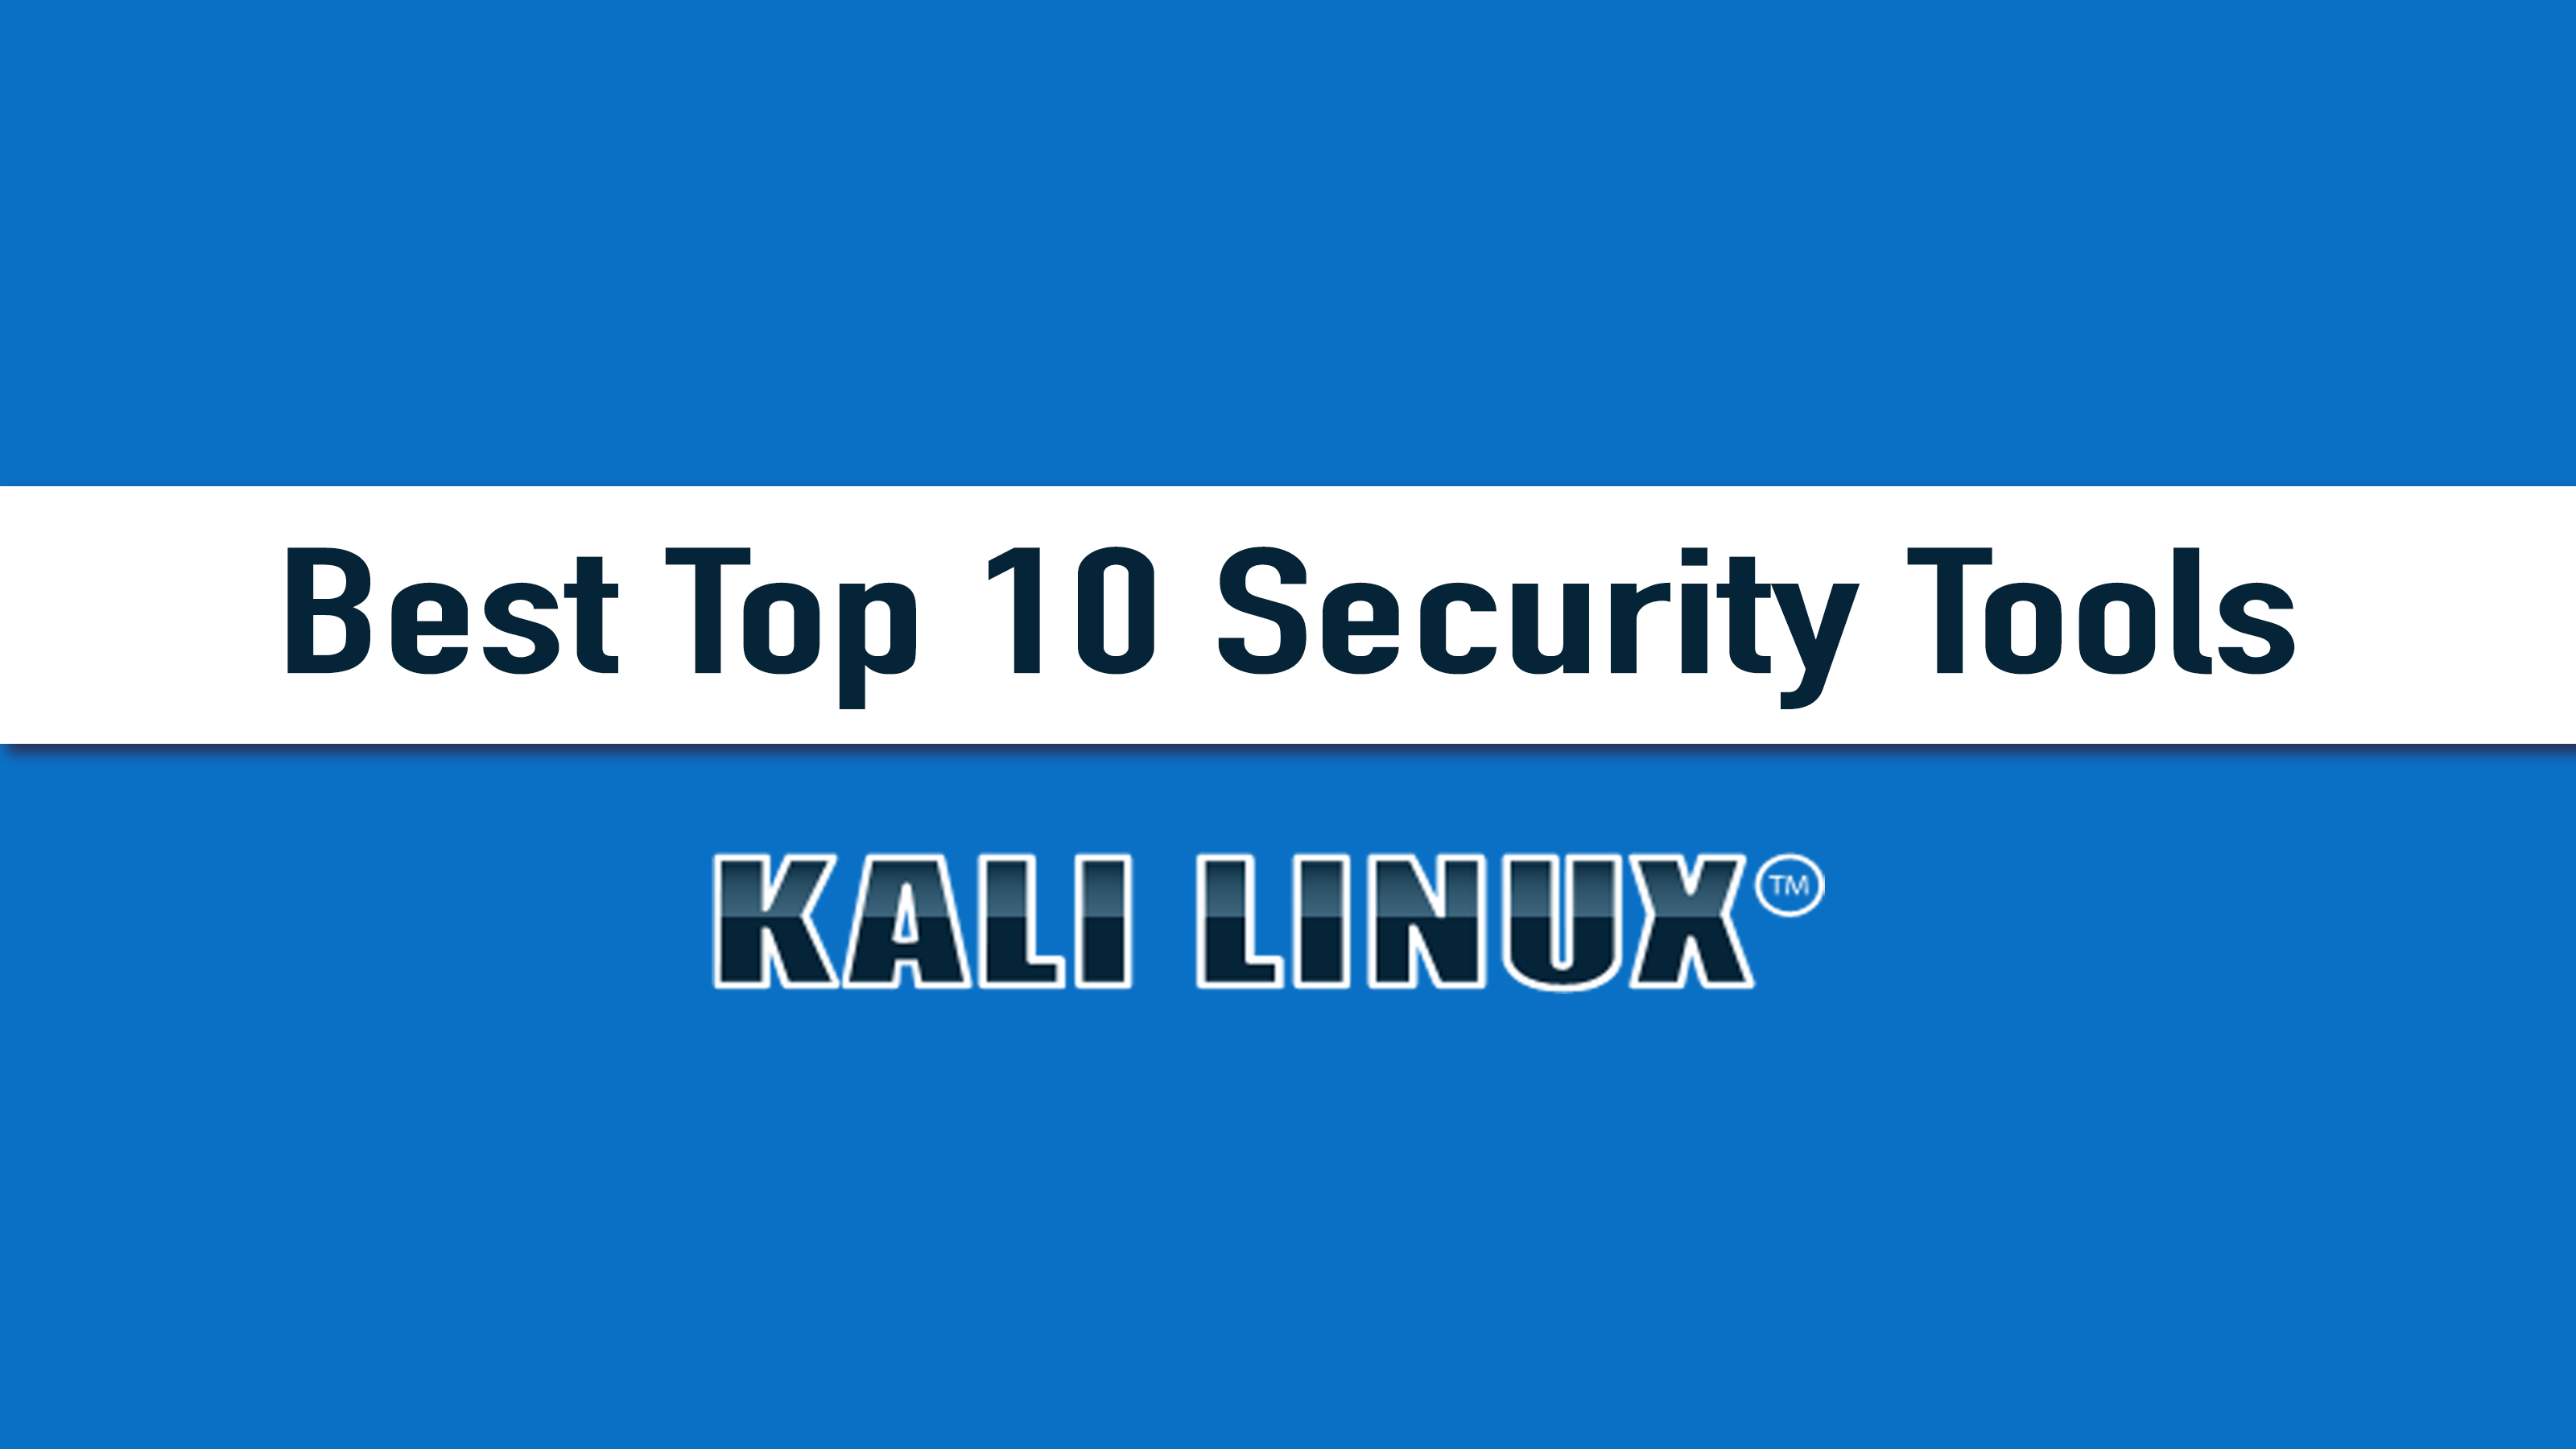 Kali Linux, Best Top 10 Security Tools